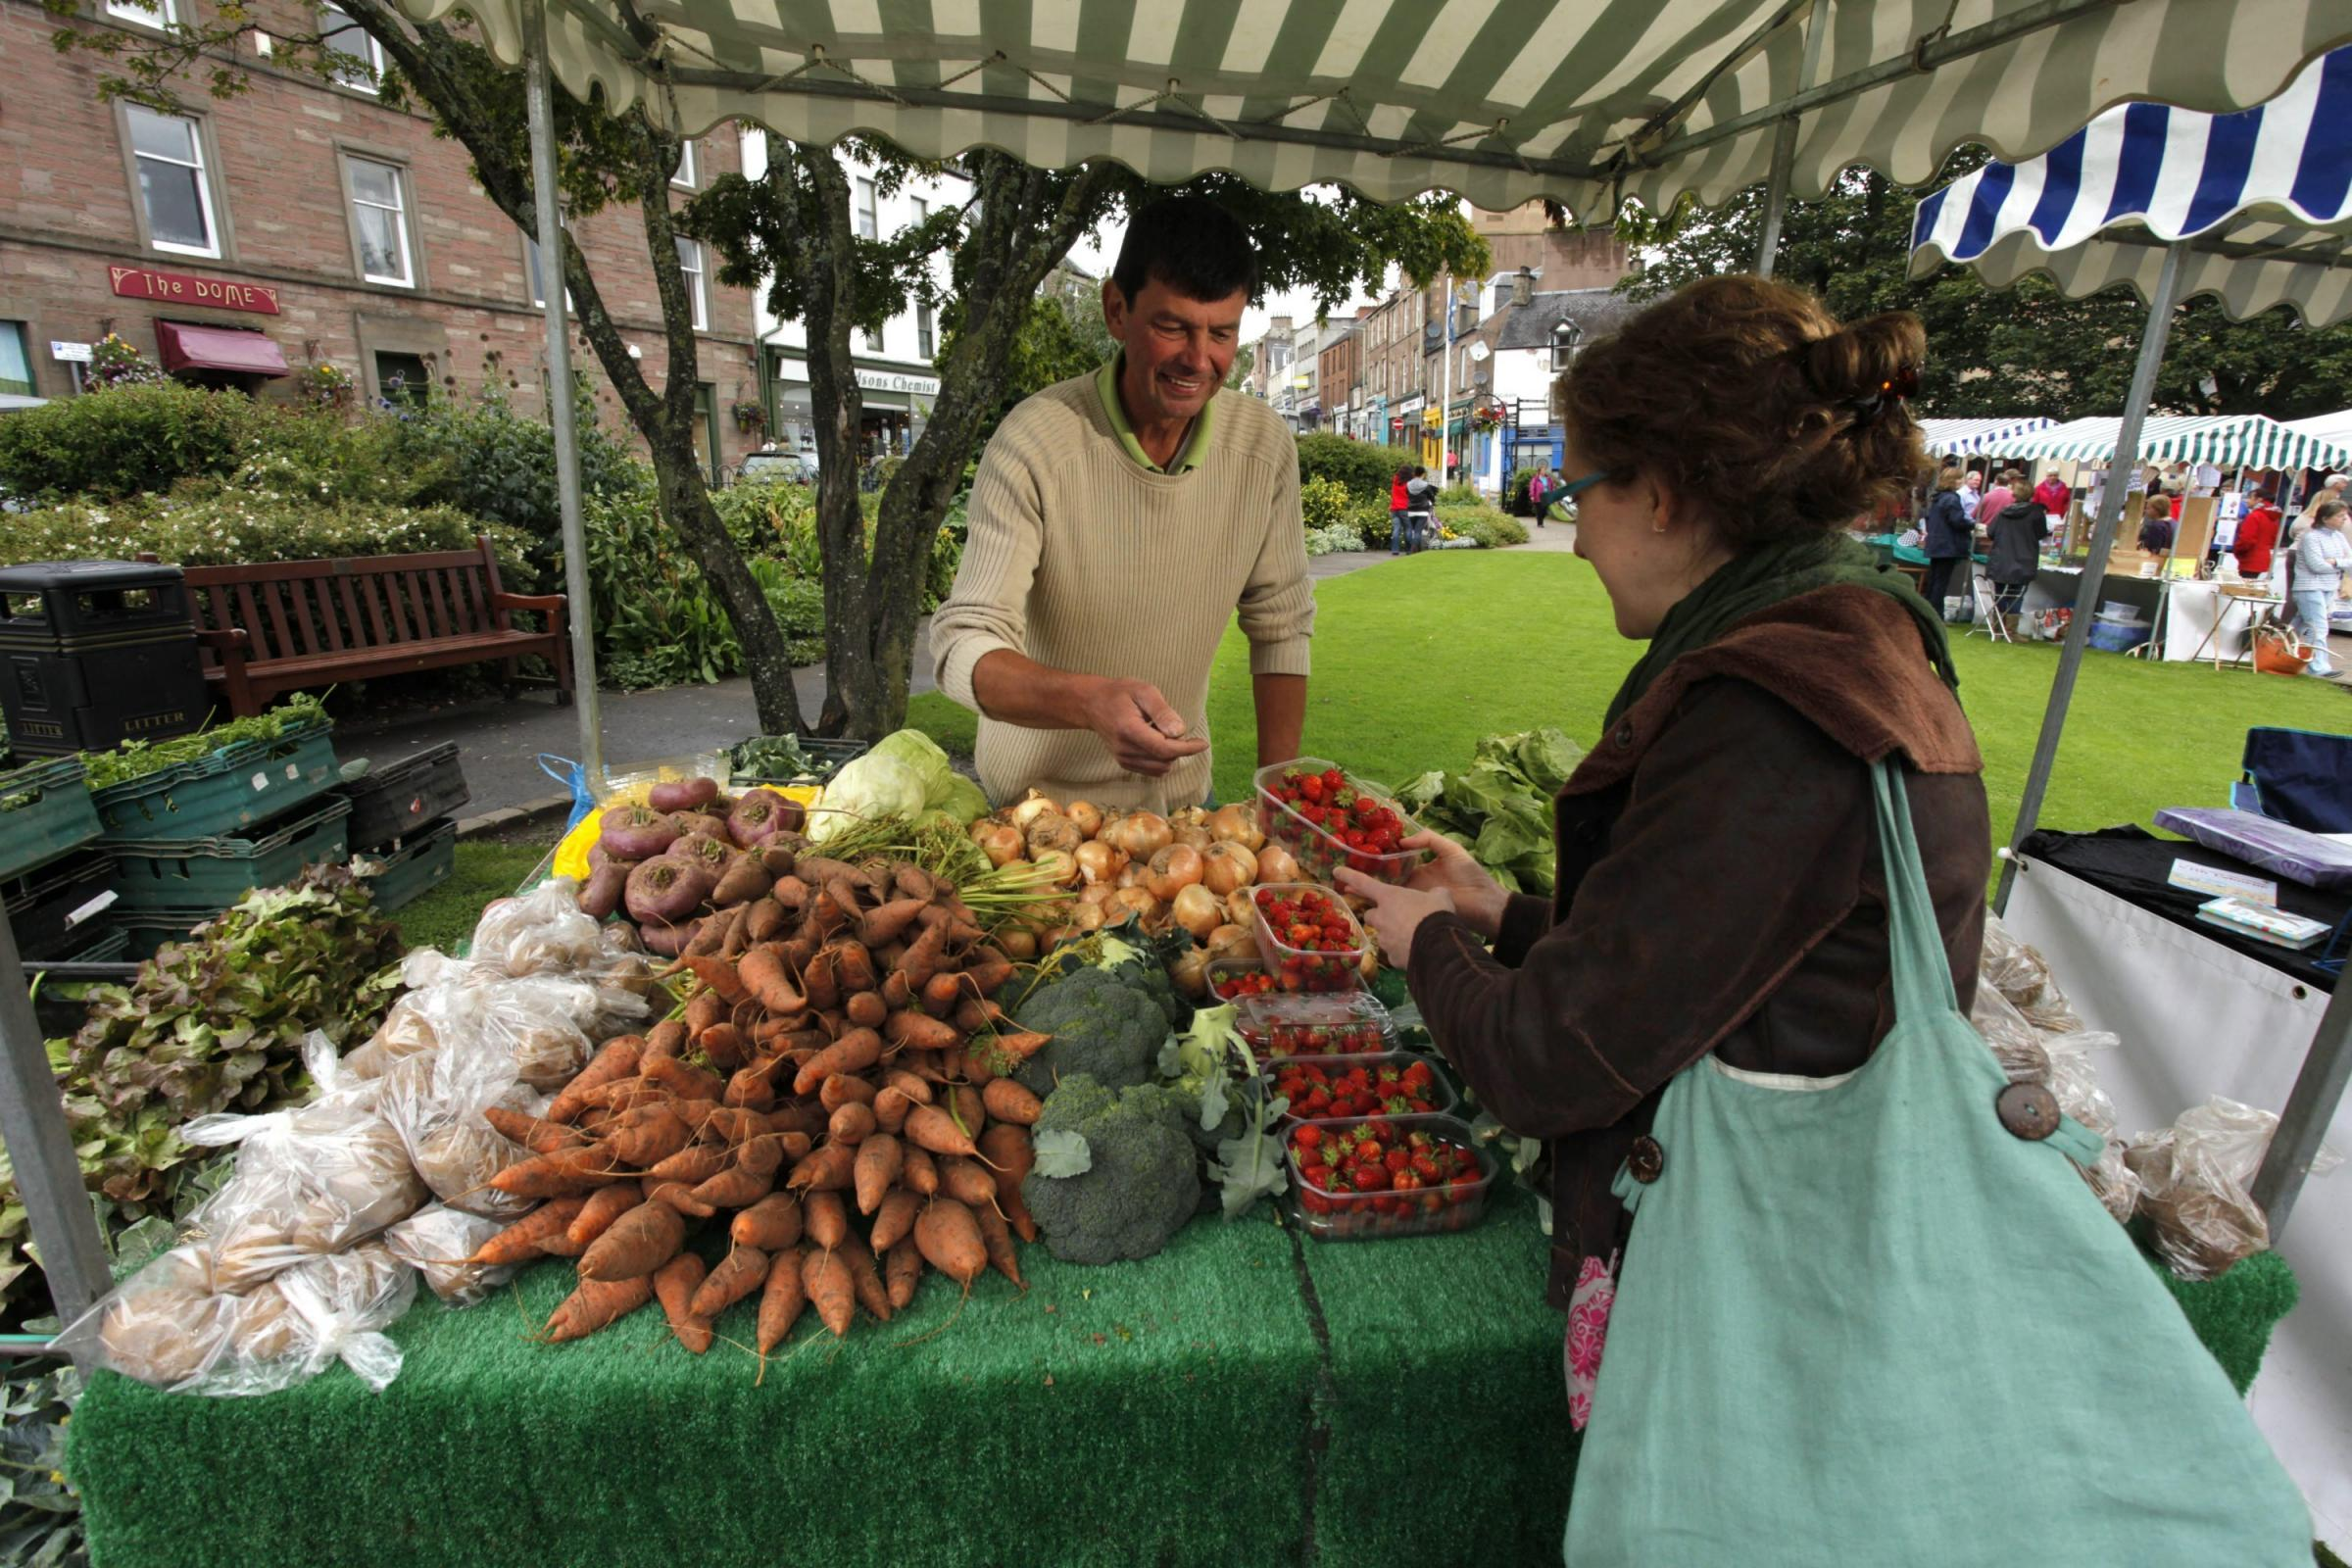 Blairgowrie farmers' market in the Wellmeadow, Blairgowrie, Perthshire. Picture Credit: Paul Tomkins info@scottishviewpoint.com